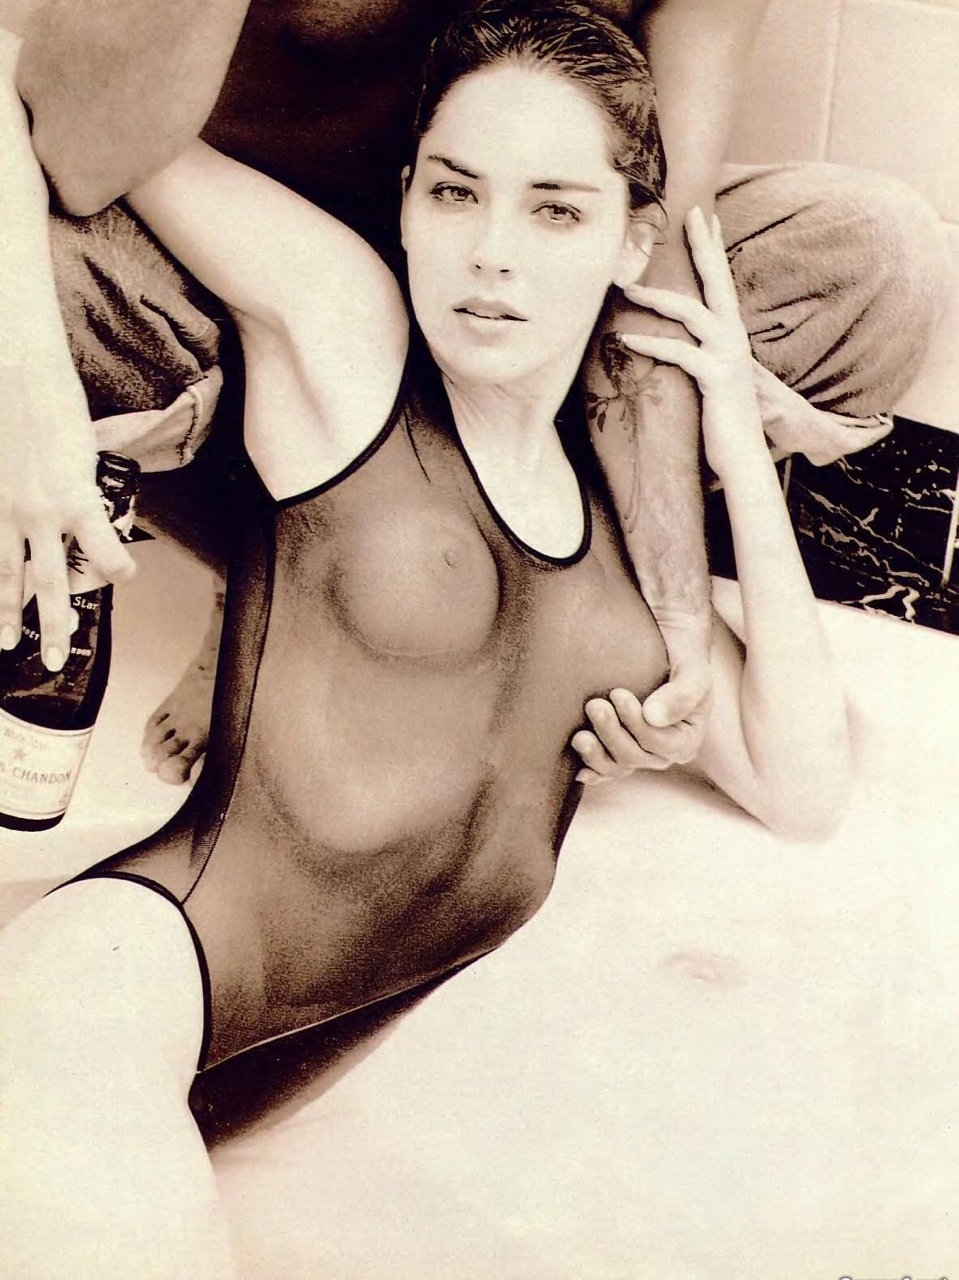 Sharon Stone Nude in Transparent Swimsuit Picture From the Past